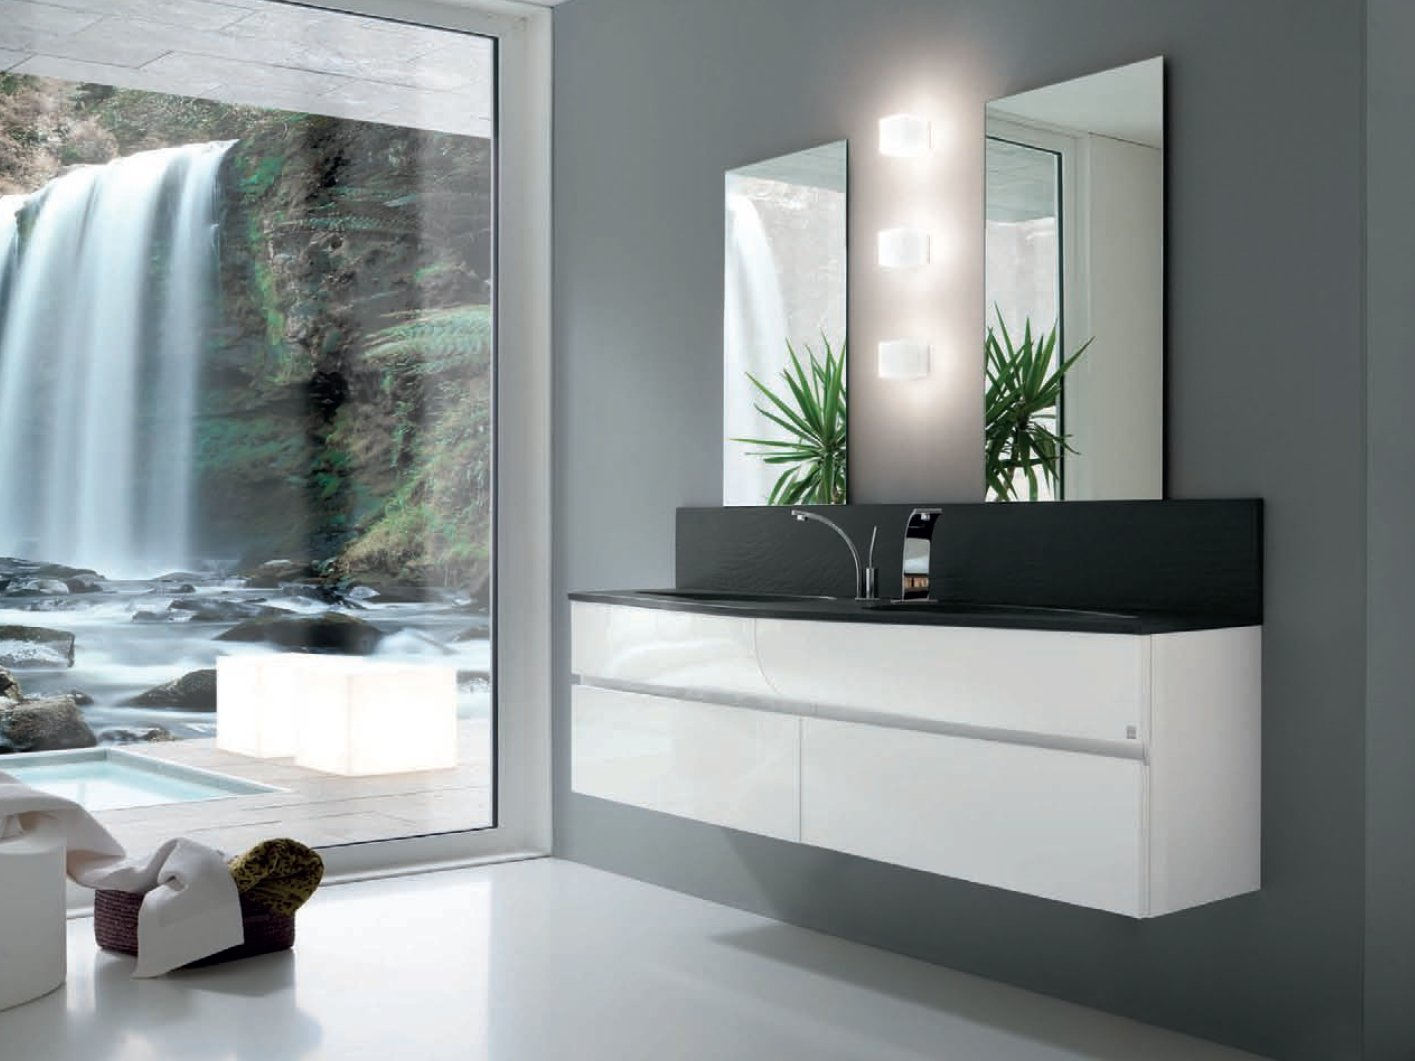 Meuble sous vasque simple ab 7020 collection wave by rab for Salle de bain optimisee